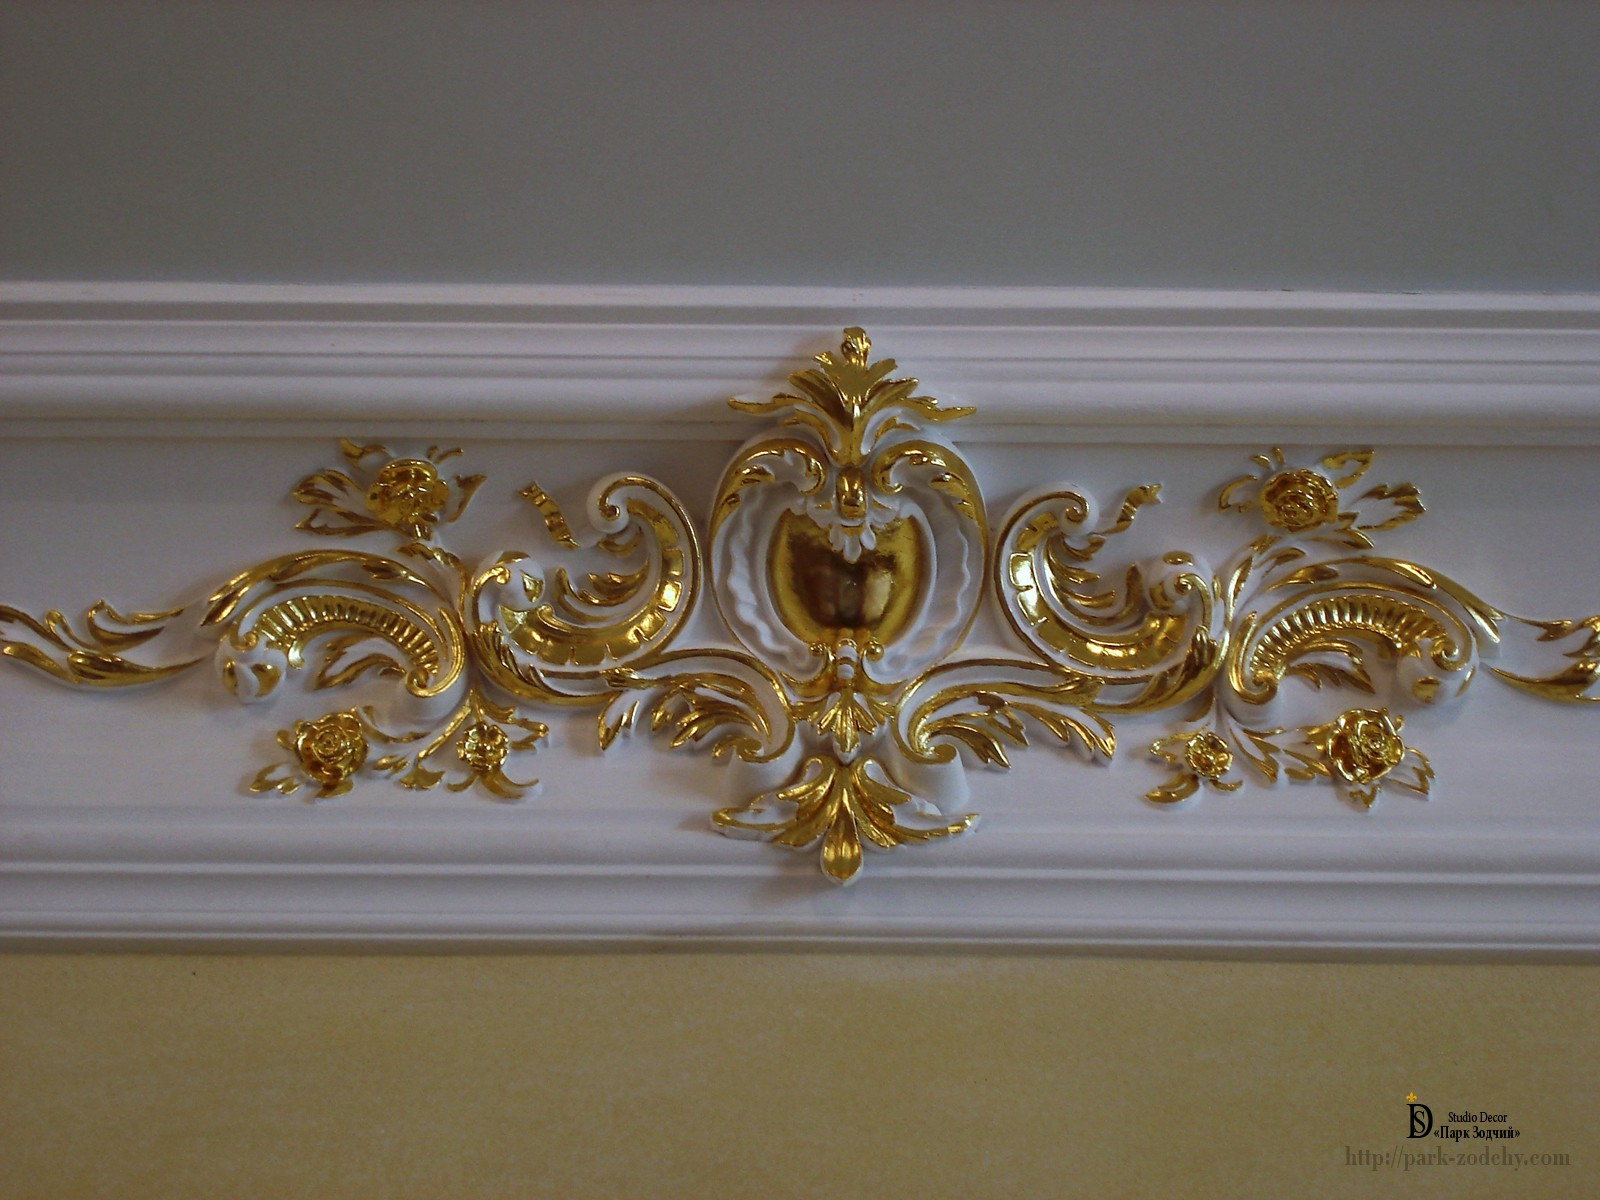 Gold leaf gilding cartouche in the classical style